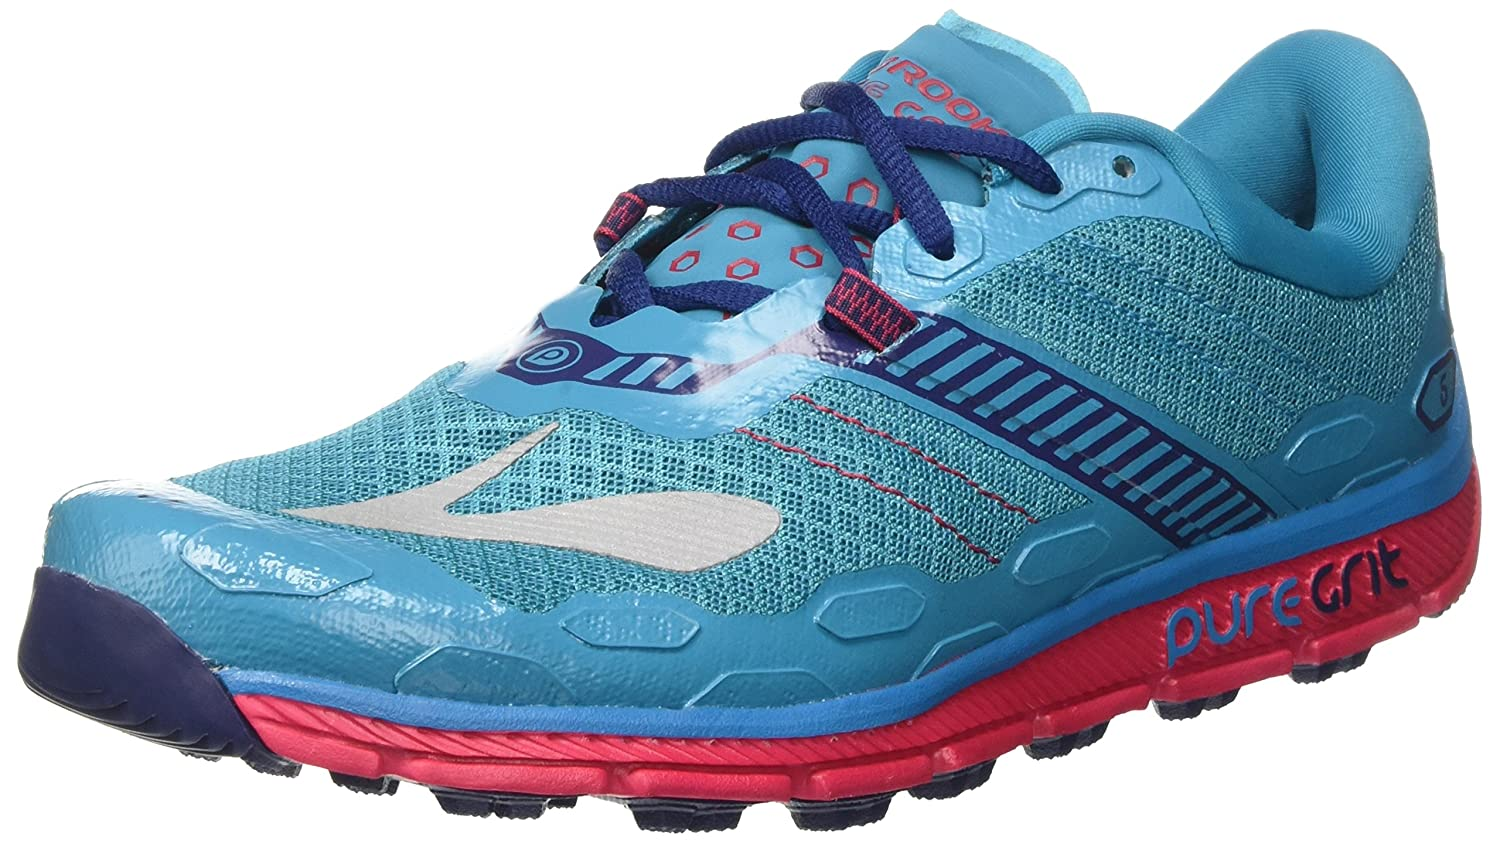 Brooks Women's PureGrit 5 B01GF8558W 8.5 B(M) US|Peacock Blue/Virtual Pink/Patriot Blue